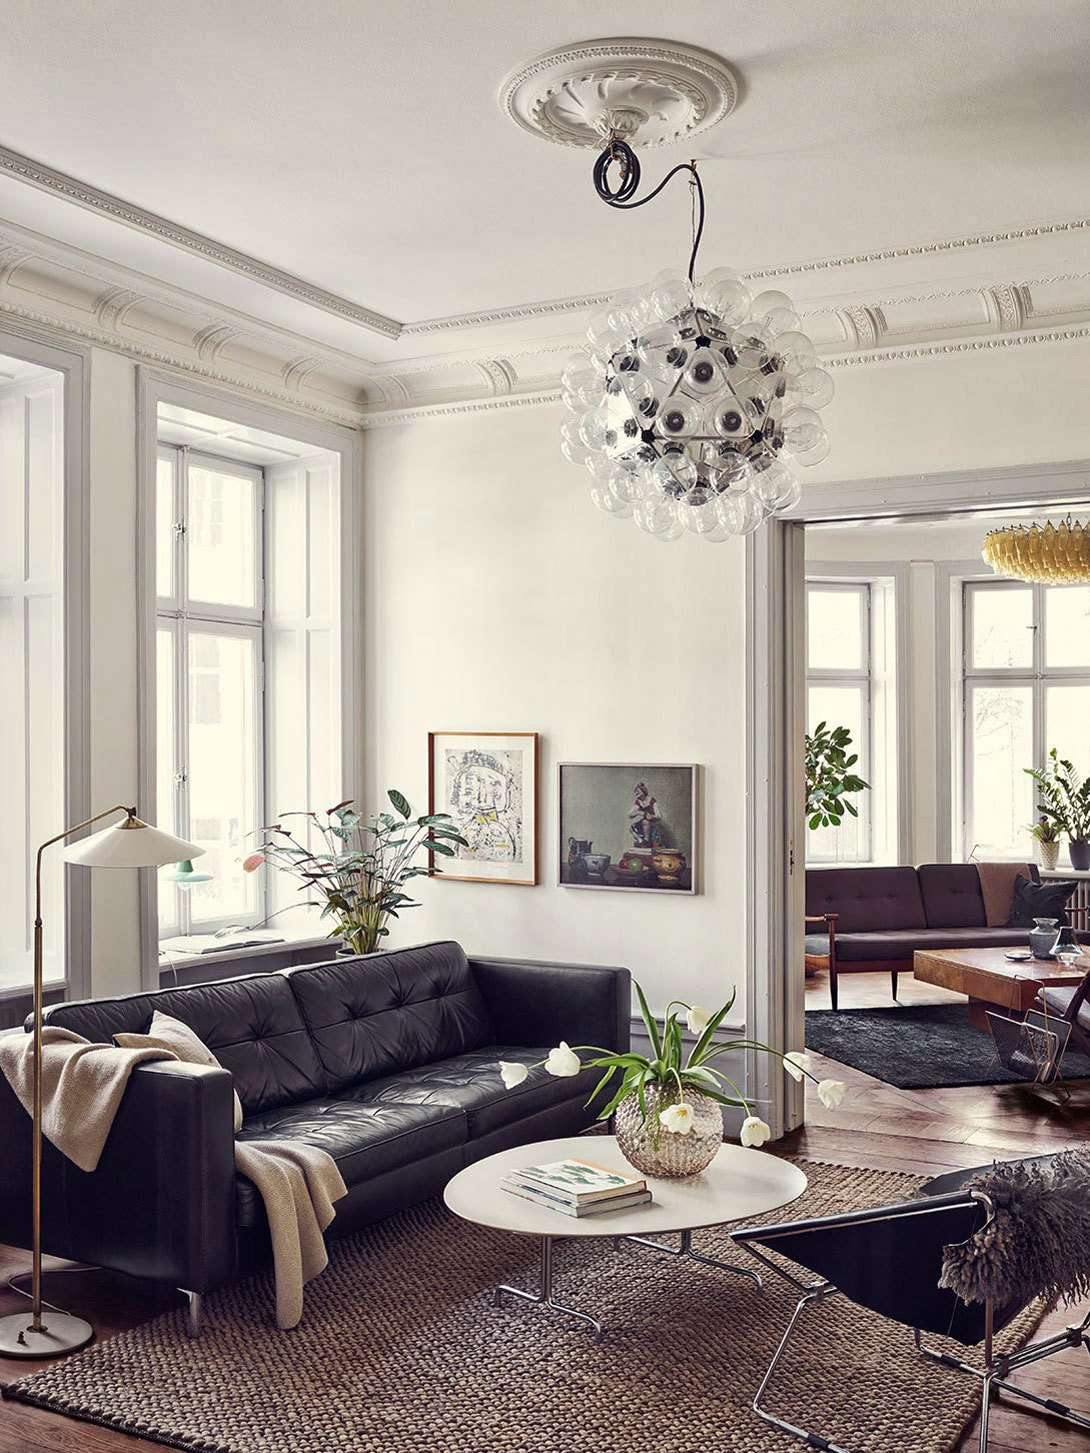 5 Black Leather Sofas, Or 'We Found What Your Living Room Was Missing'